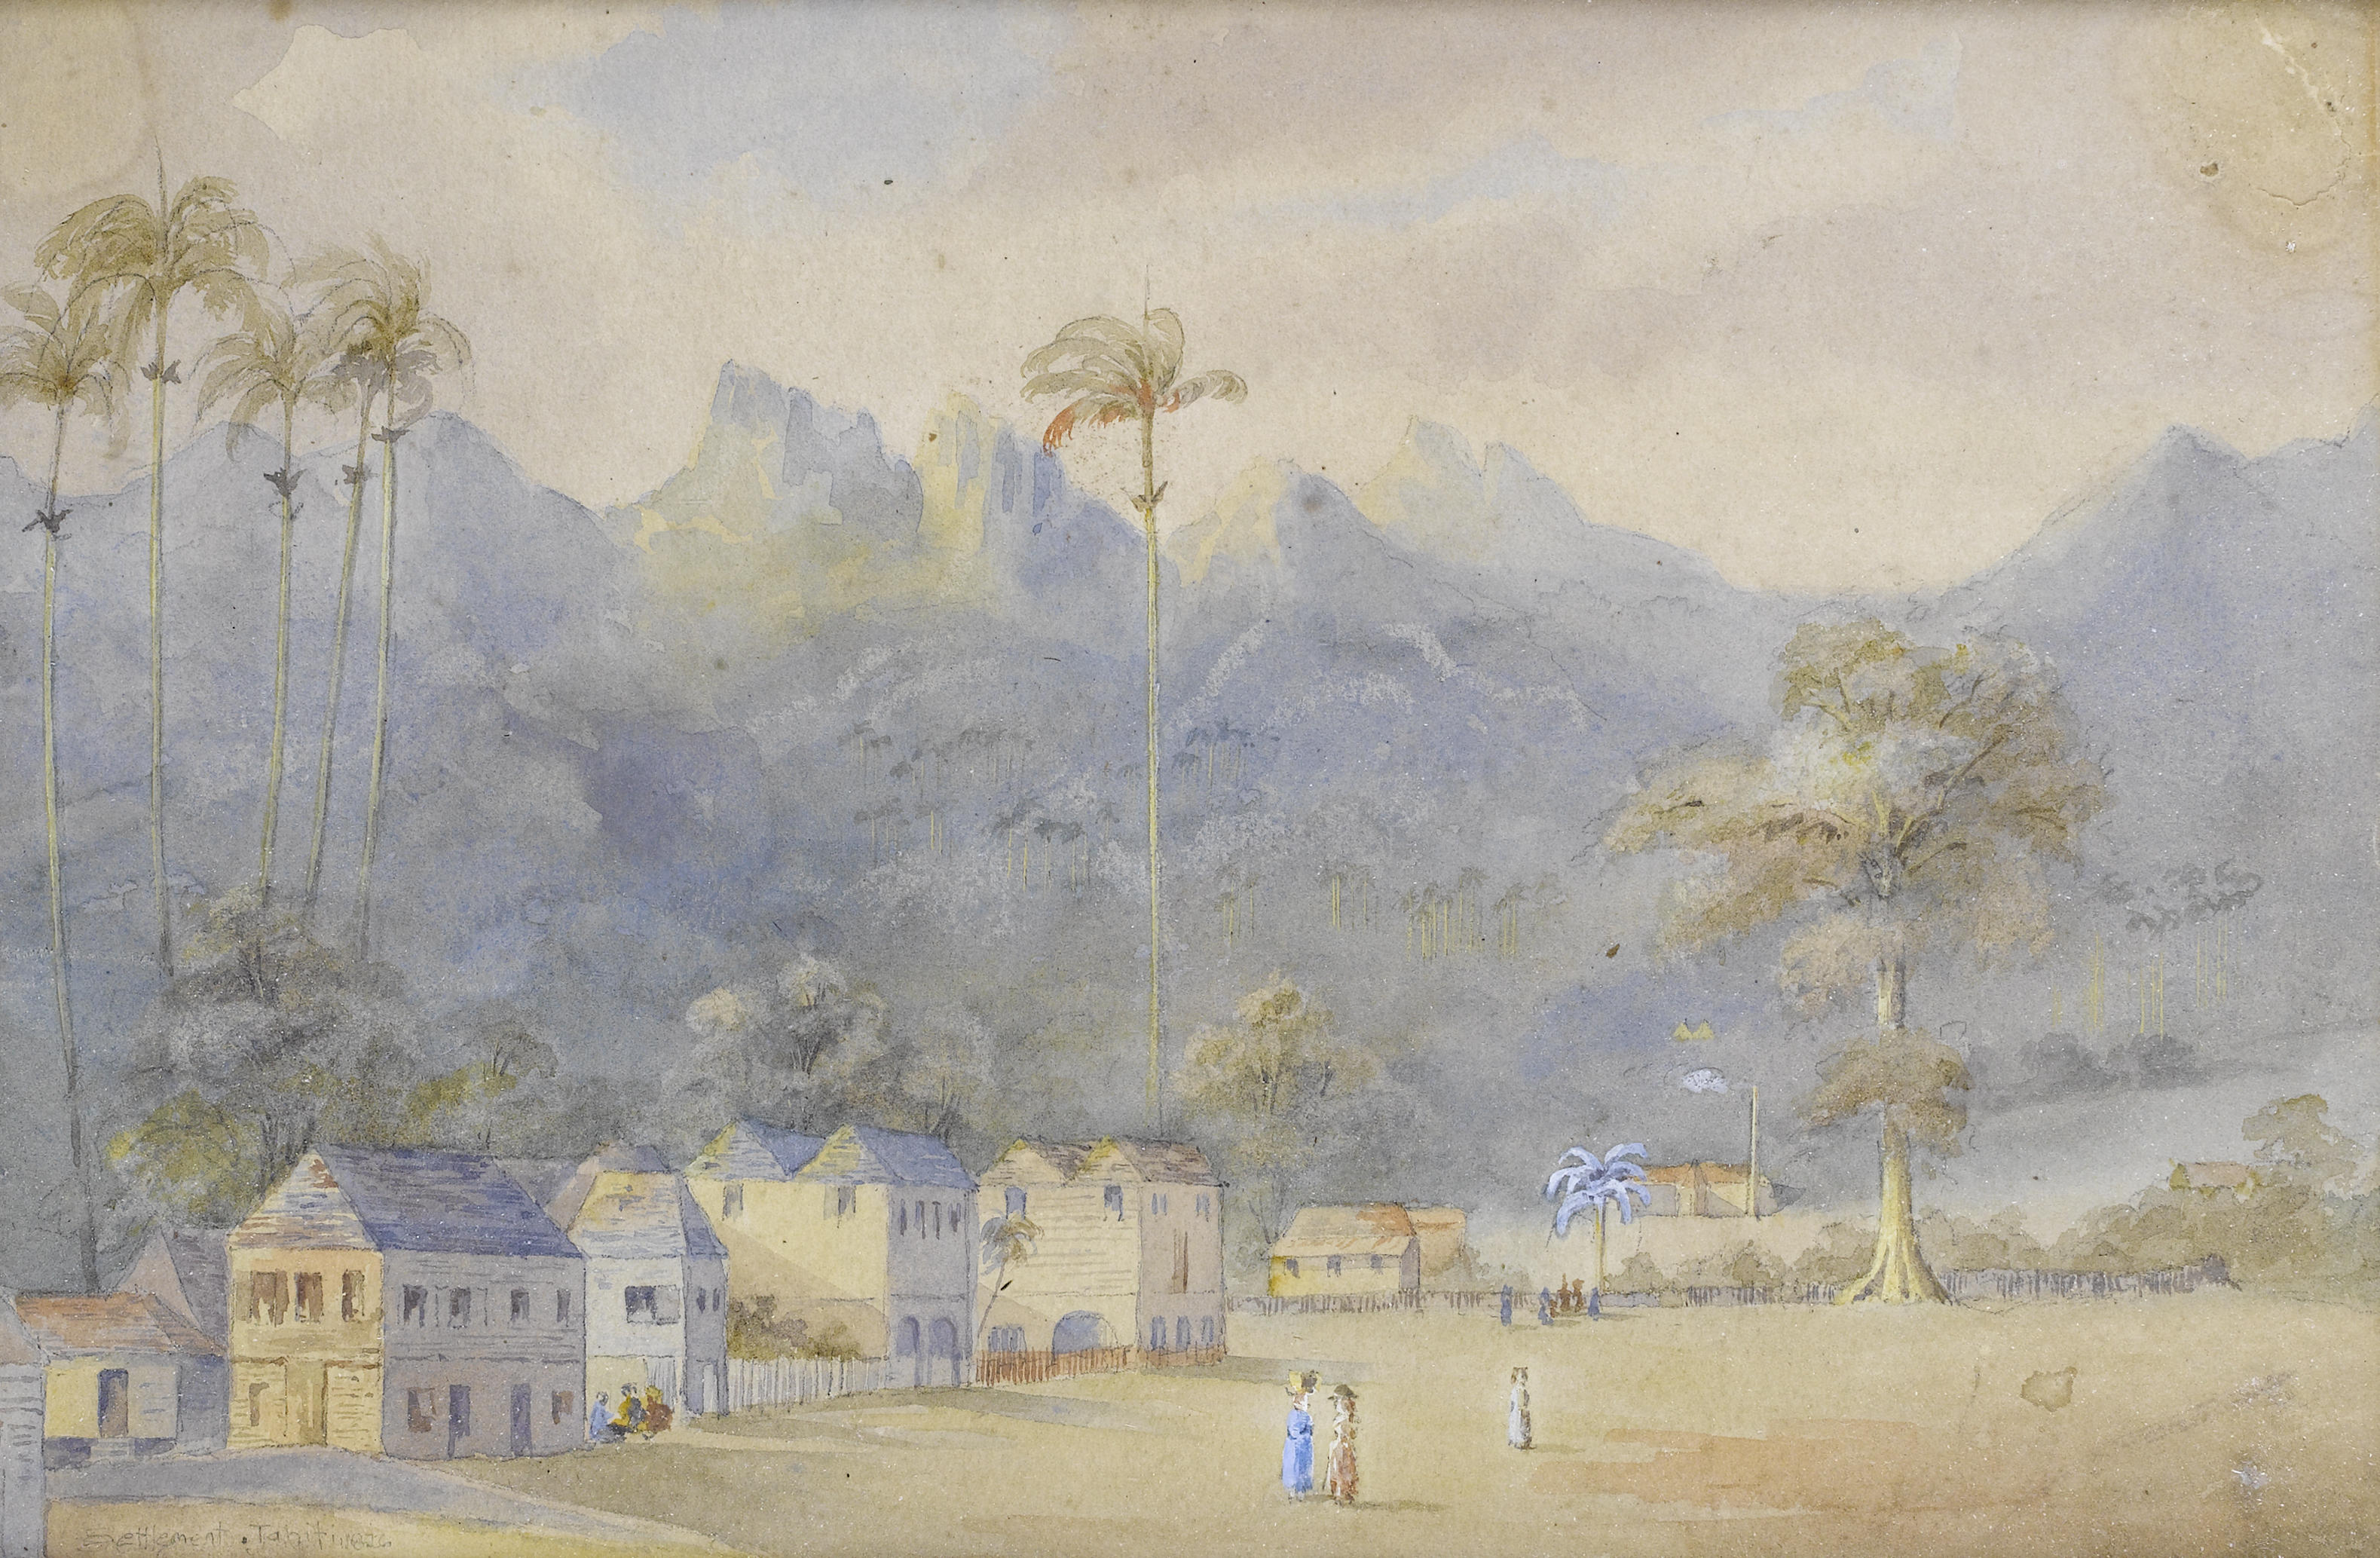 History of watercolor art - File Richard Heys Settlement Tahiti 1826 Watercolor And Bodycolor Jpg